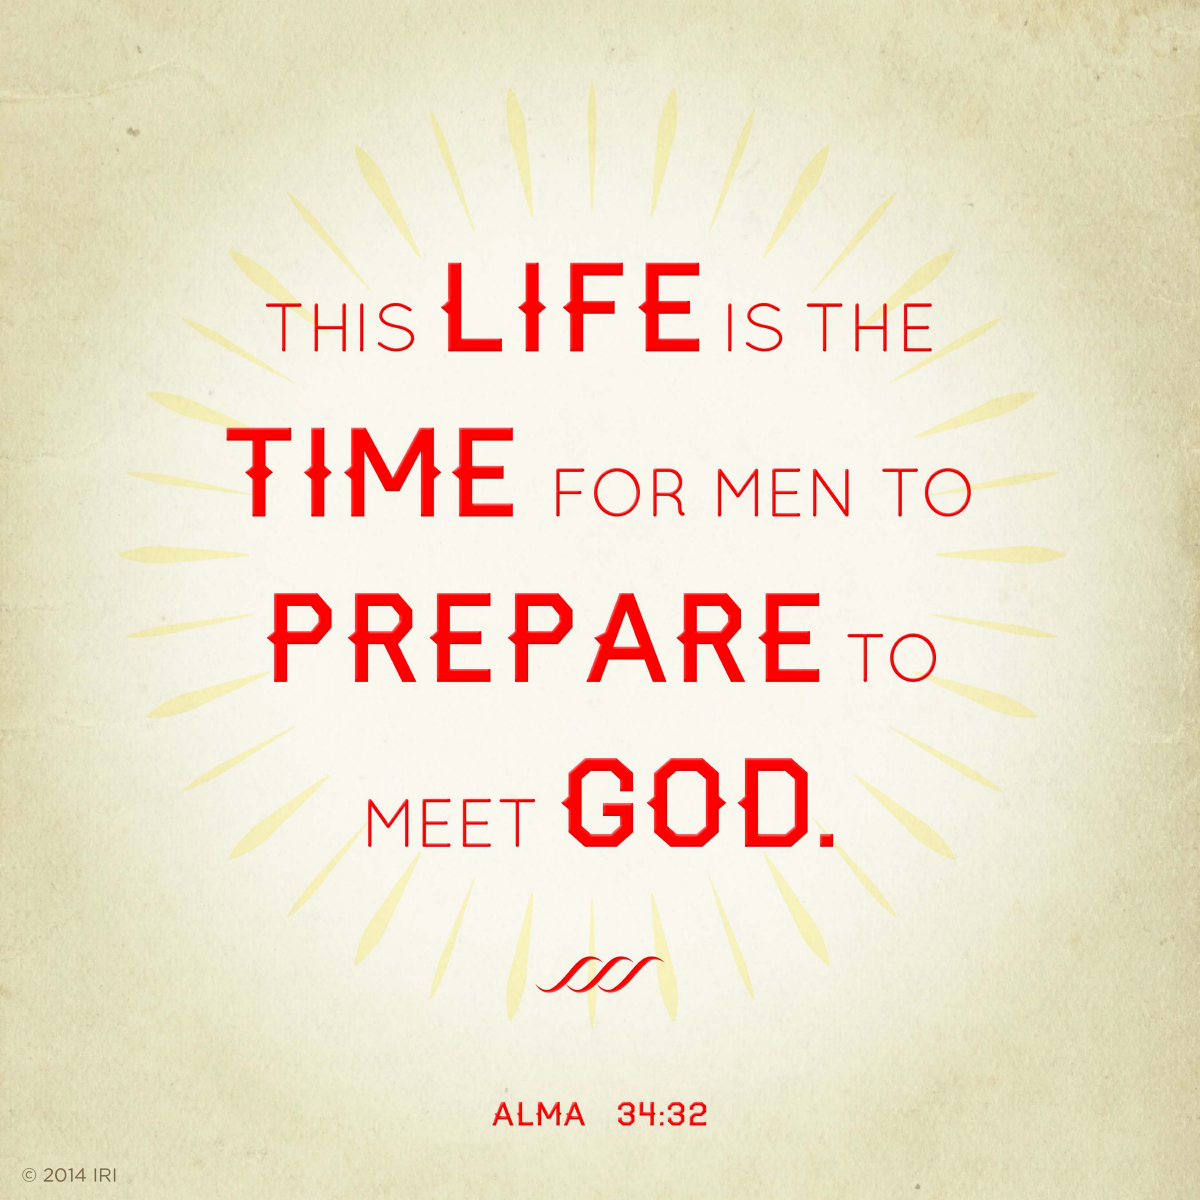 Prepare to meet god - Download god is good all the time ...